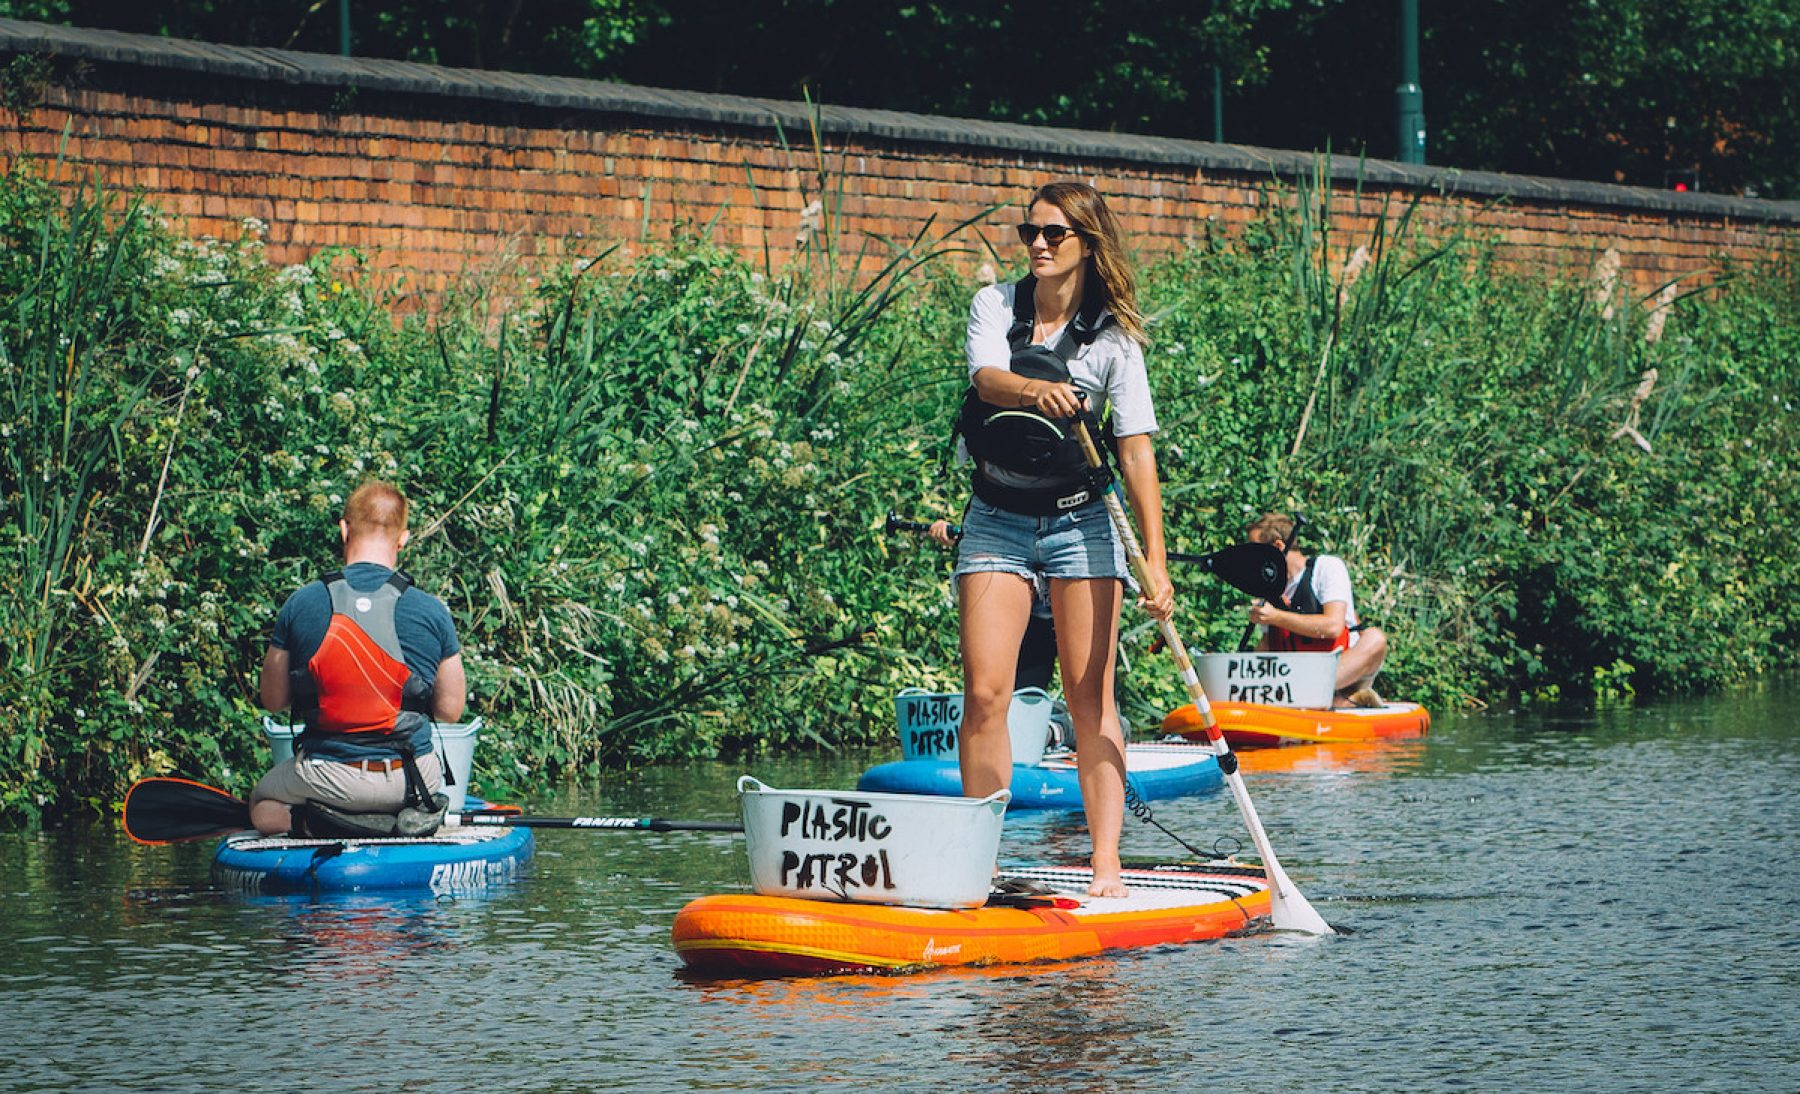 Image for Four projects that are bringing people together through litter-picking